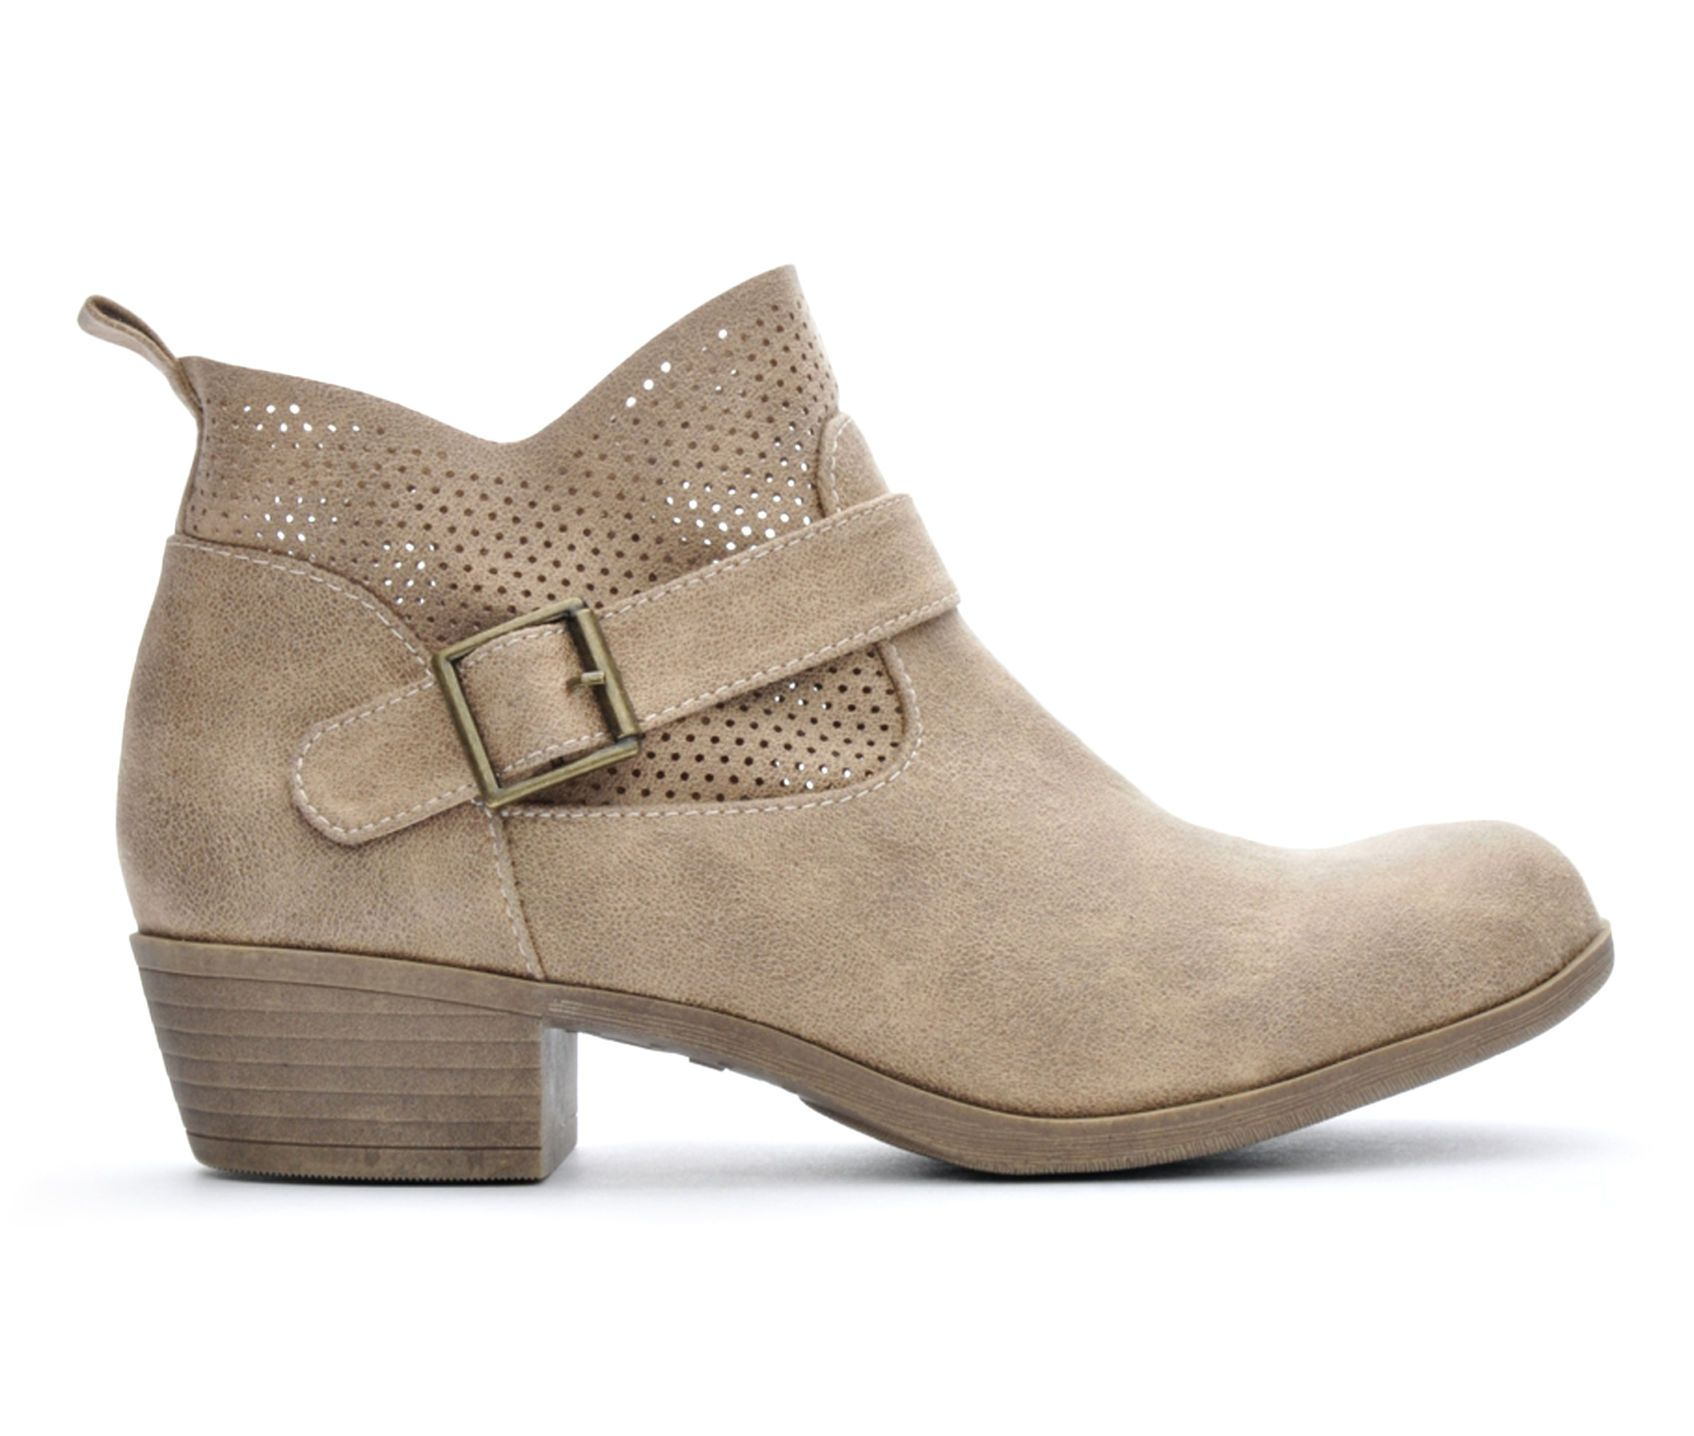 62b83df72 Women's No Parking Alee Booties | Fashion in 2019 | Boots, Shoes ...